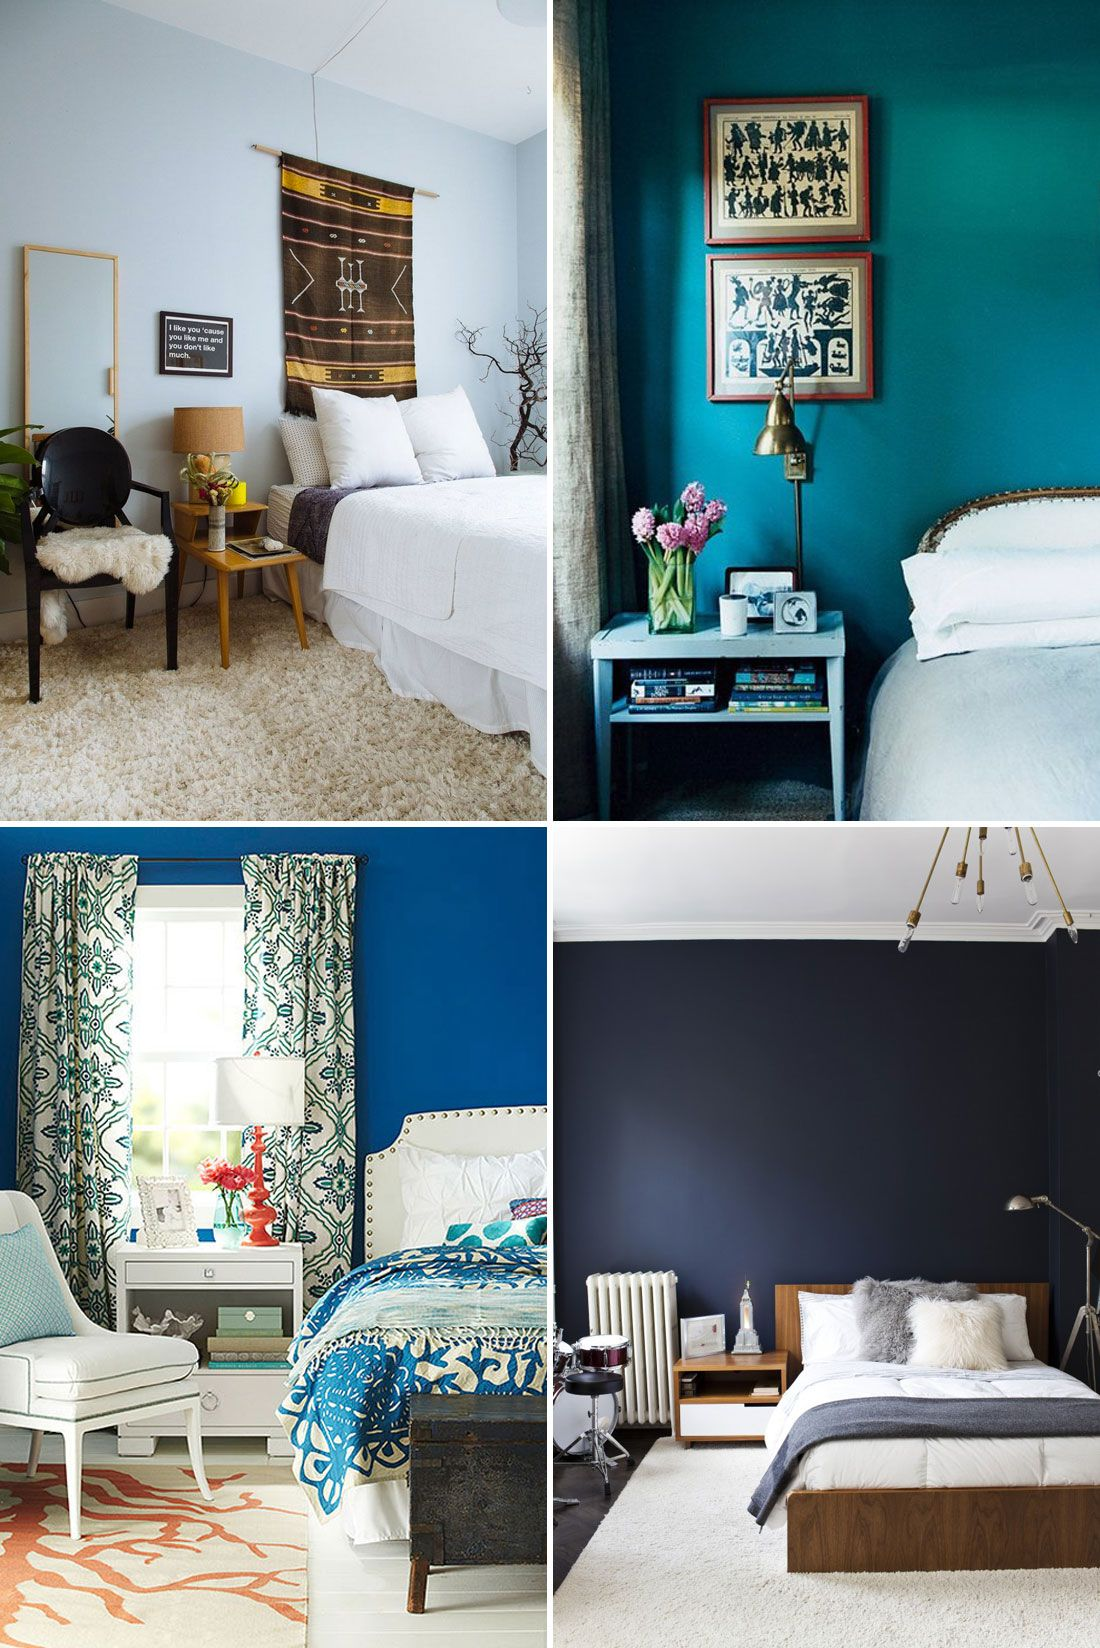 Add A Relaxing Shade Of Blue To Your Bedroom Walls.